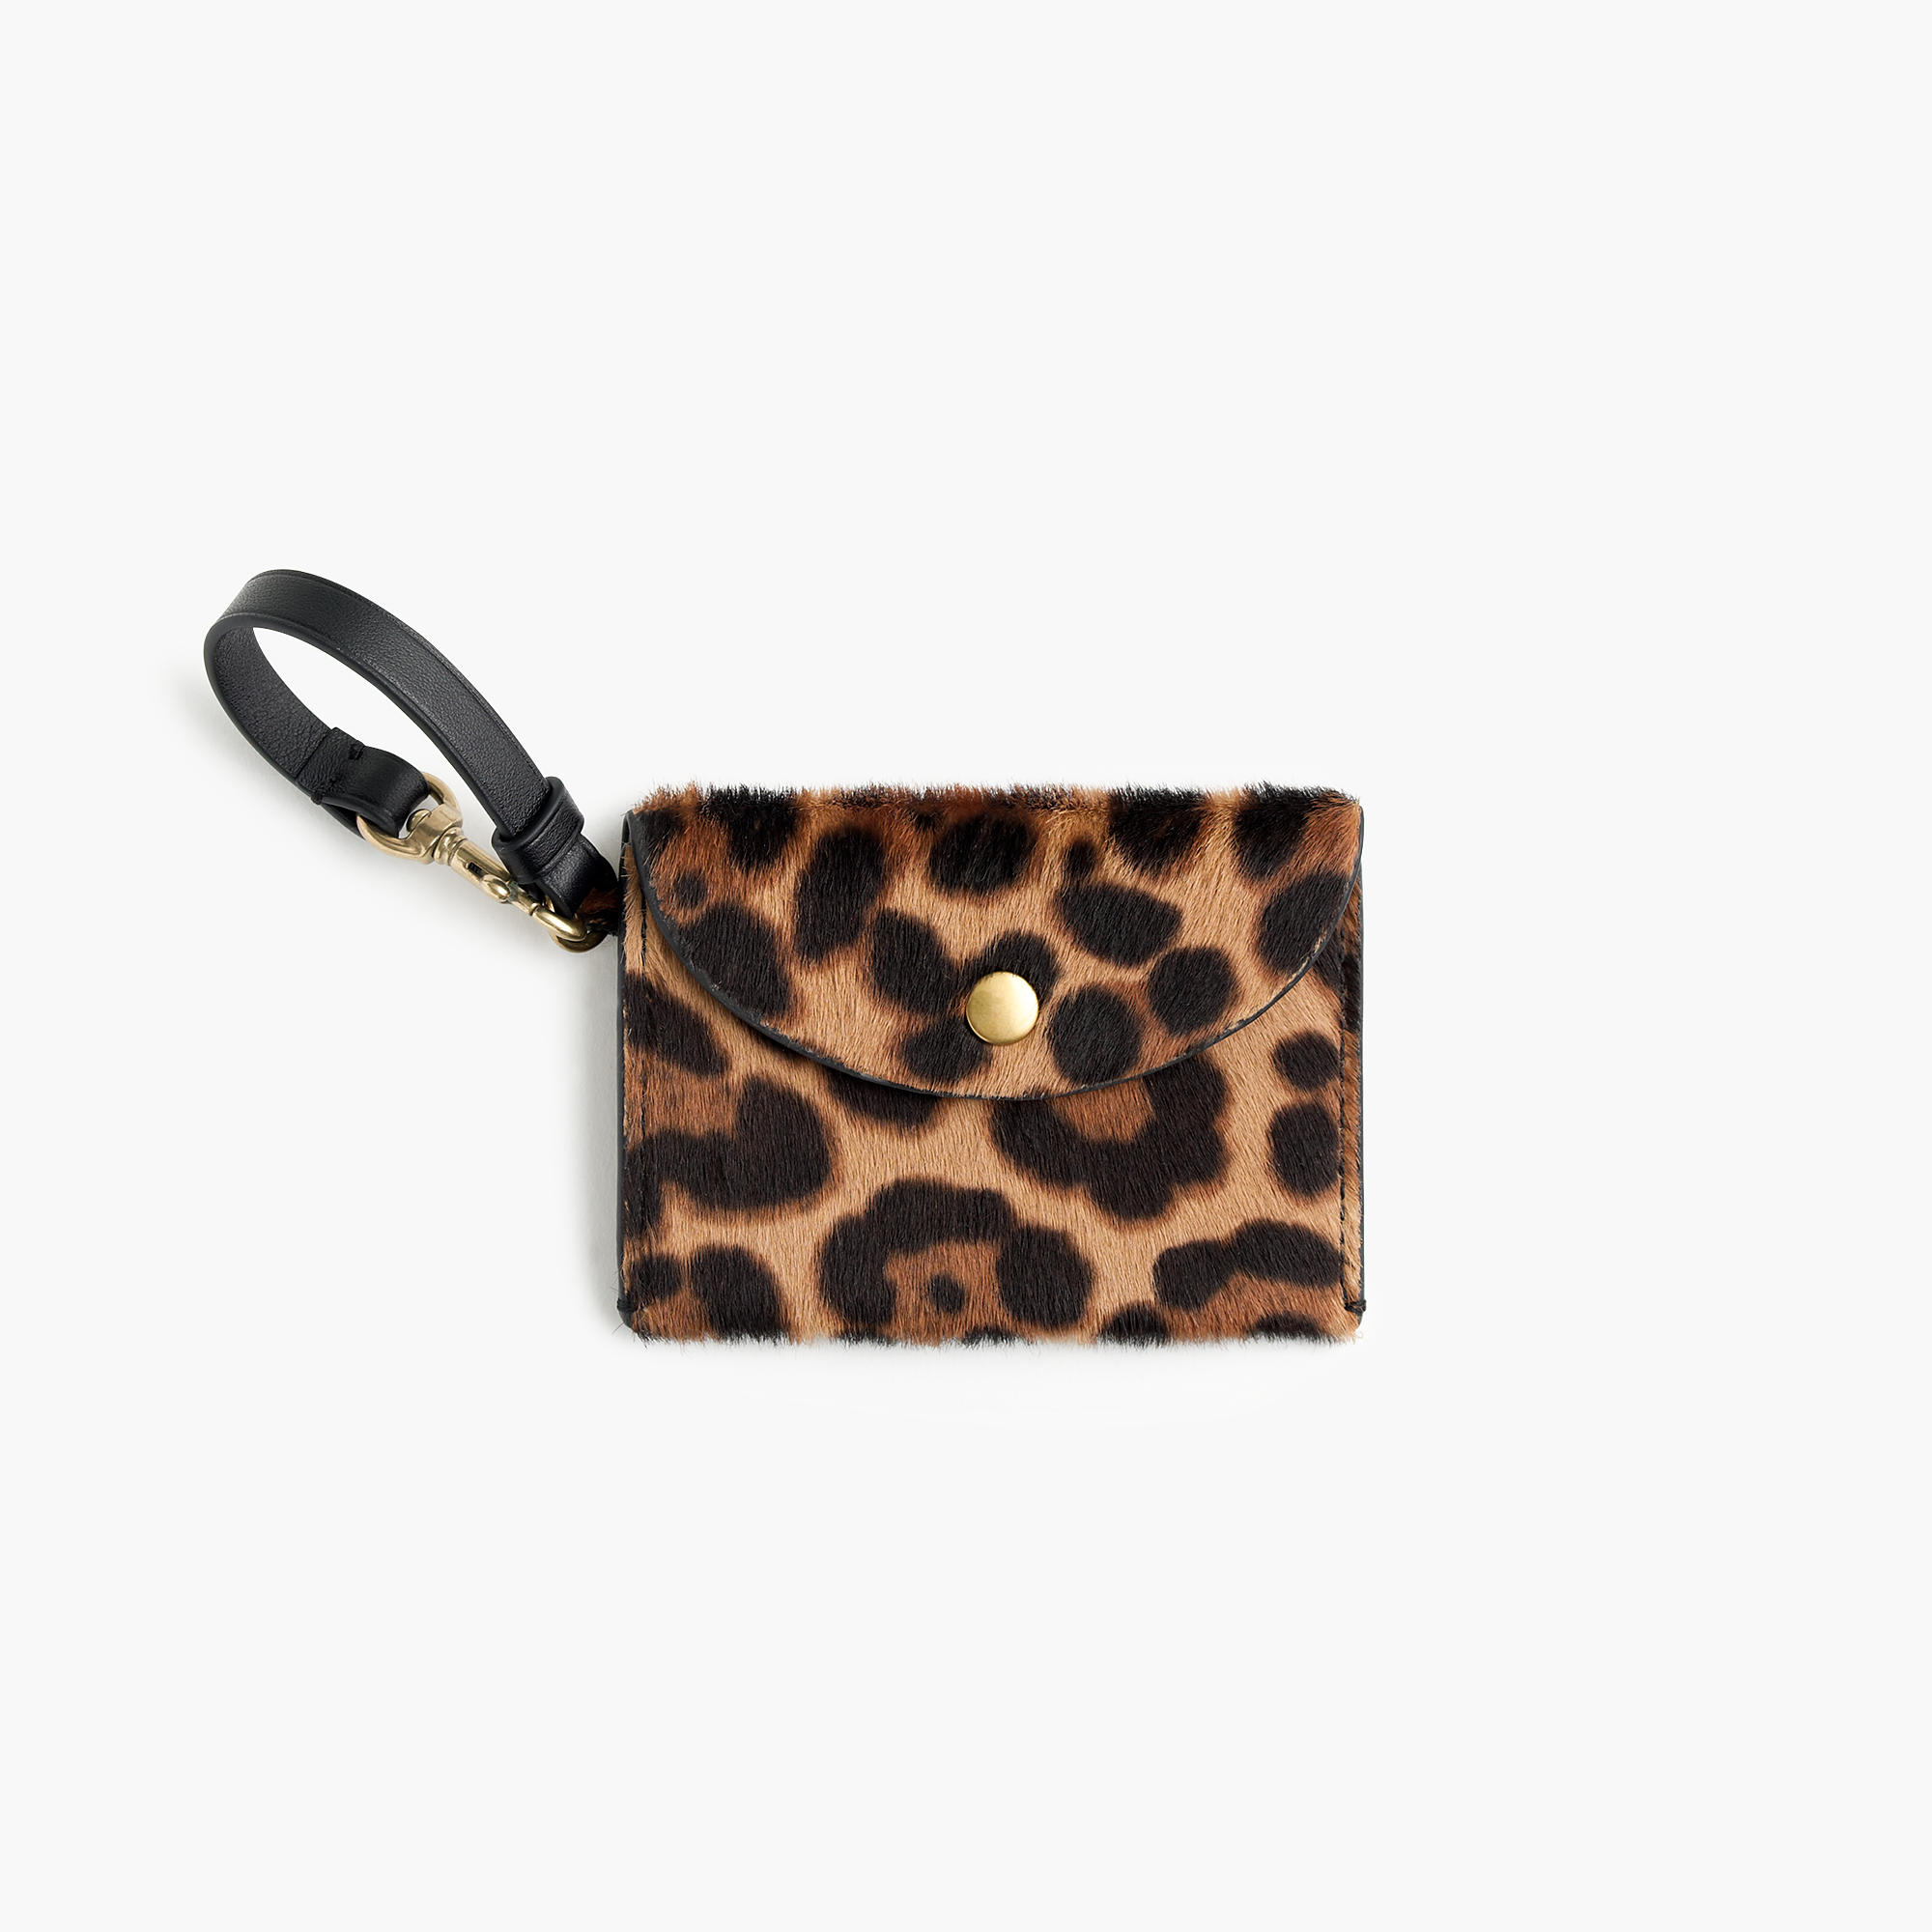 J.Crew Customizable Coin Pouch in Italian Calf Hair, Hazelnut Leopard